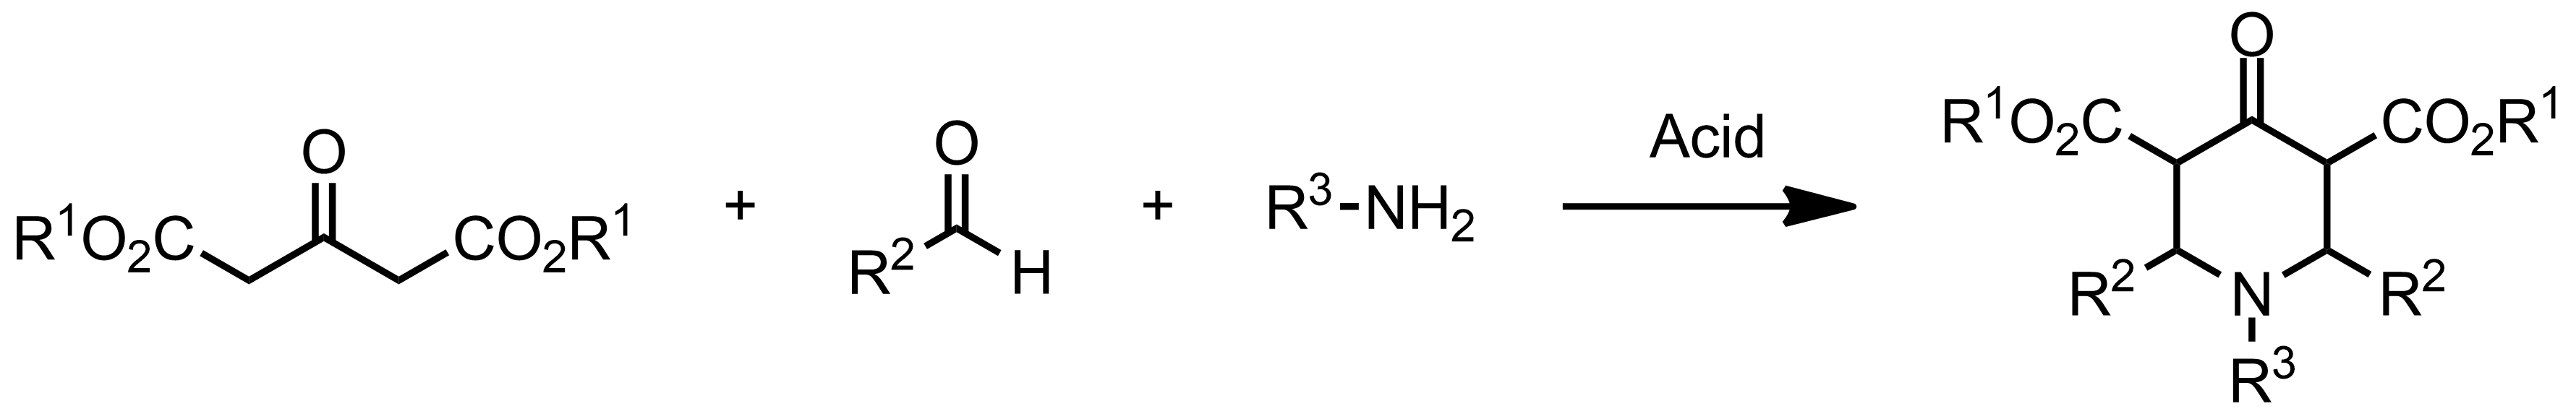 Schematic representation of the Petrenko-Kritschenko Piperidone Synthesis.